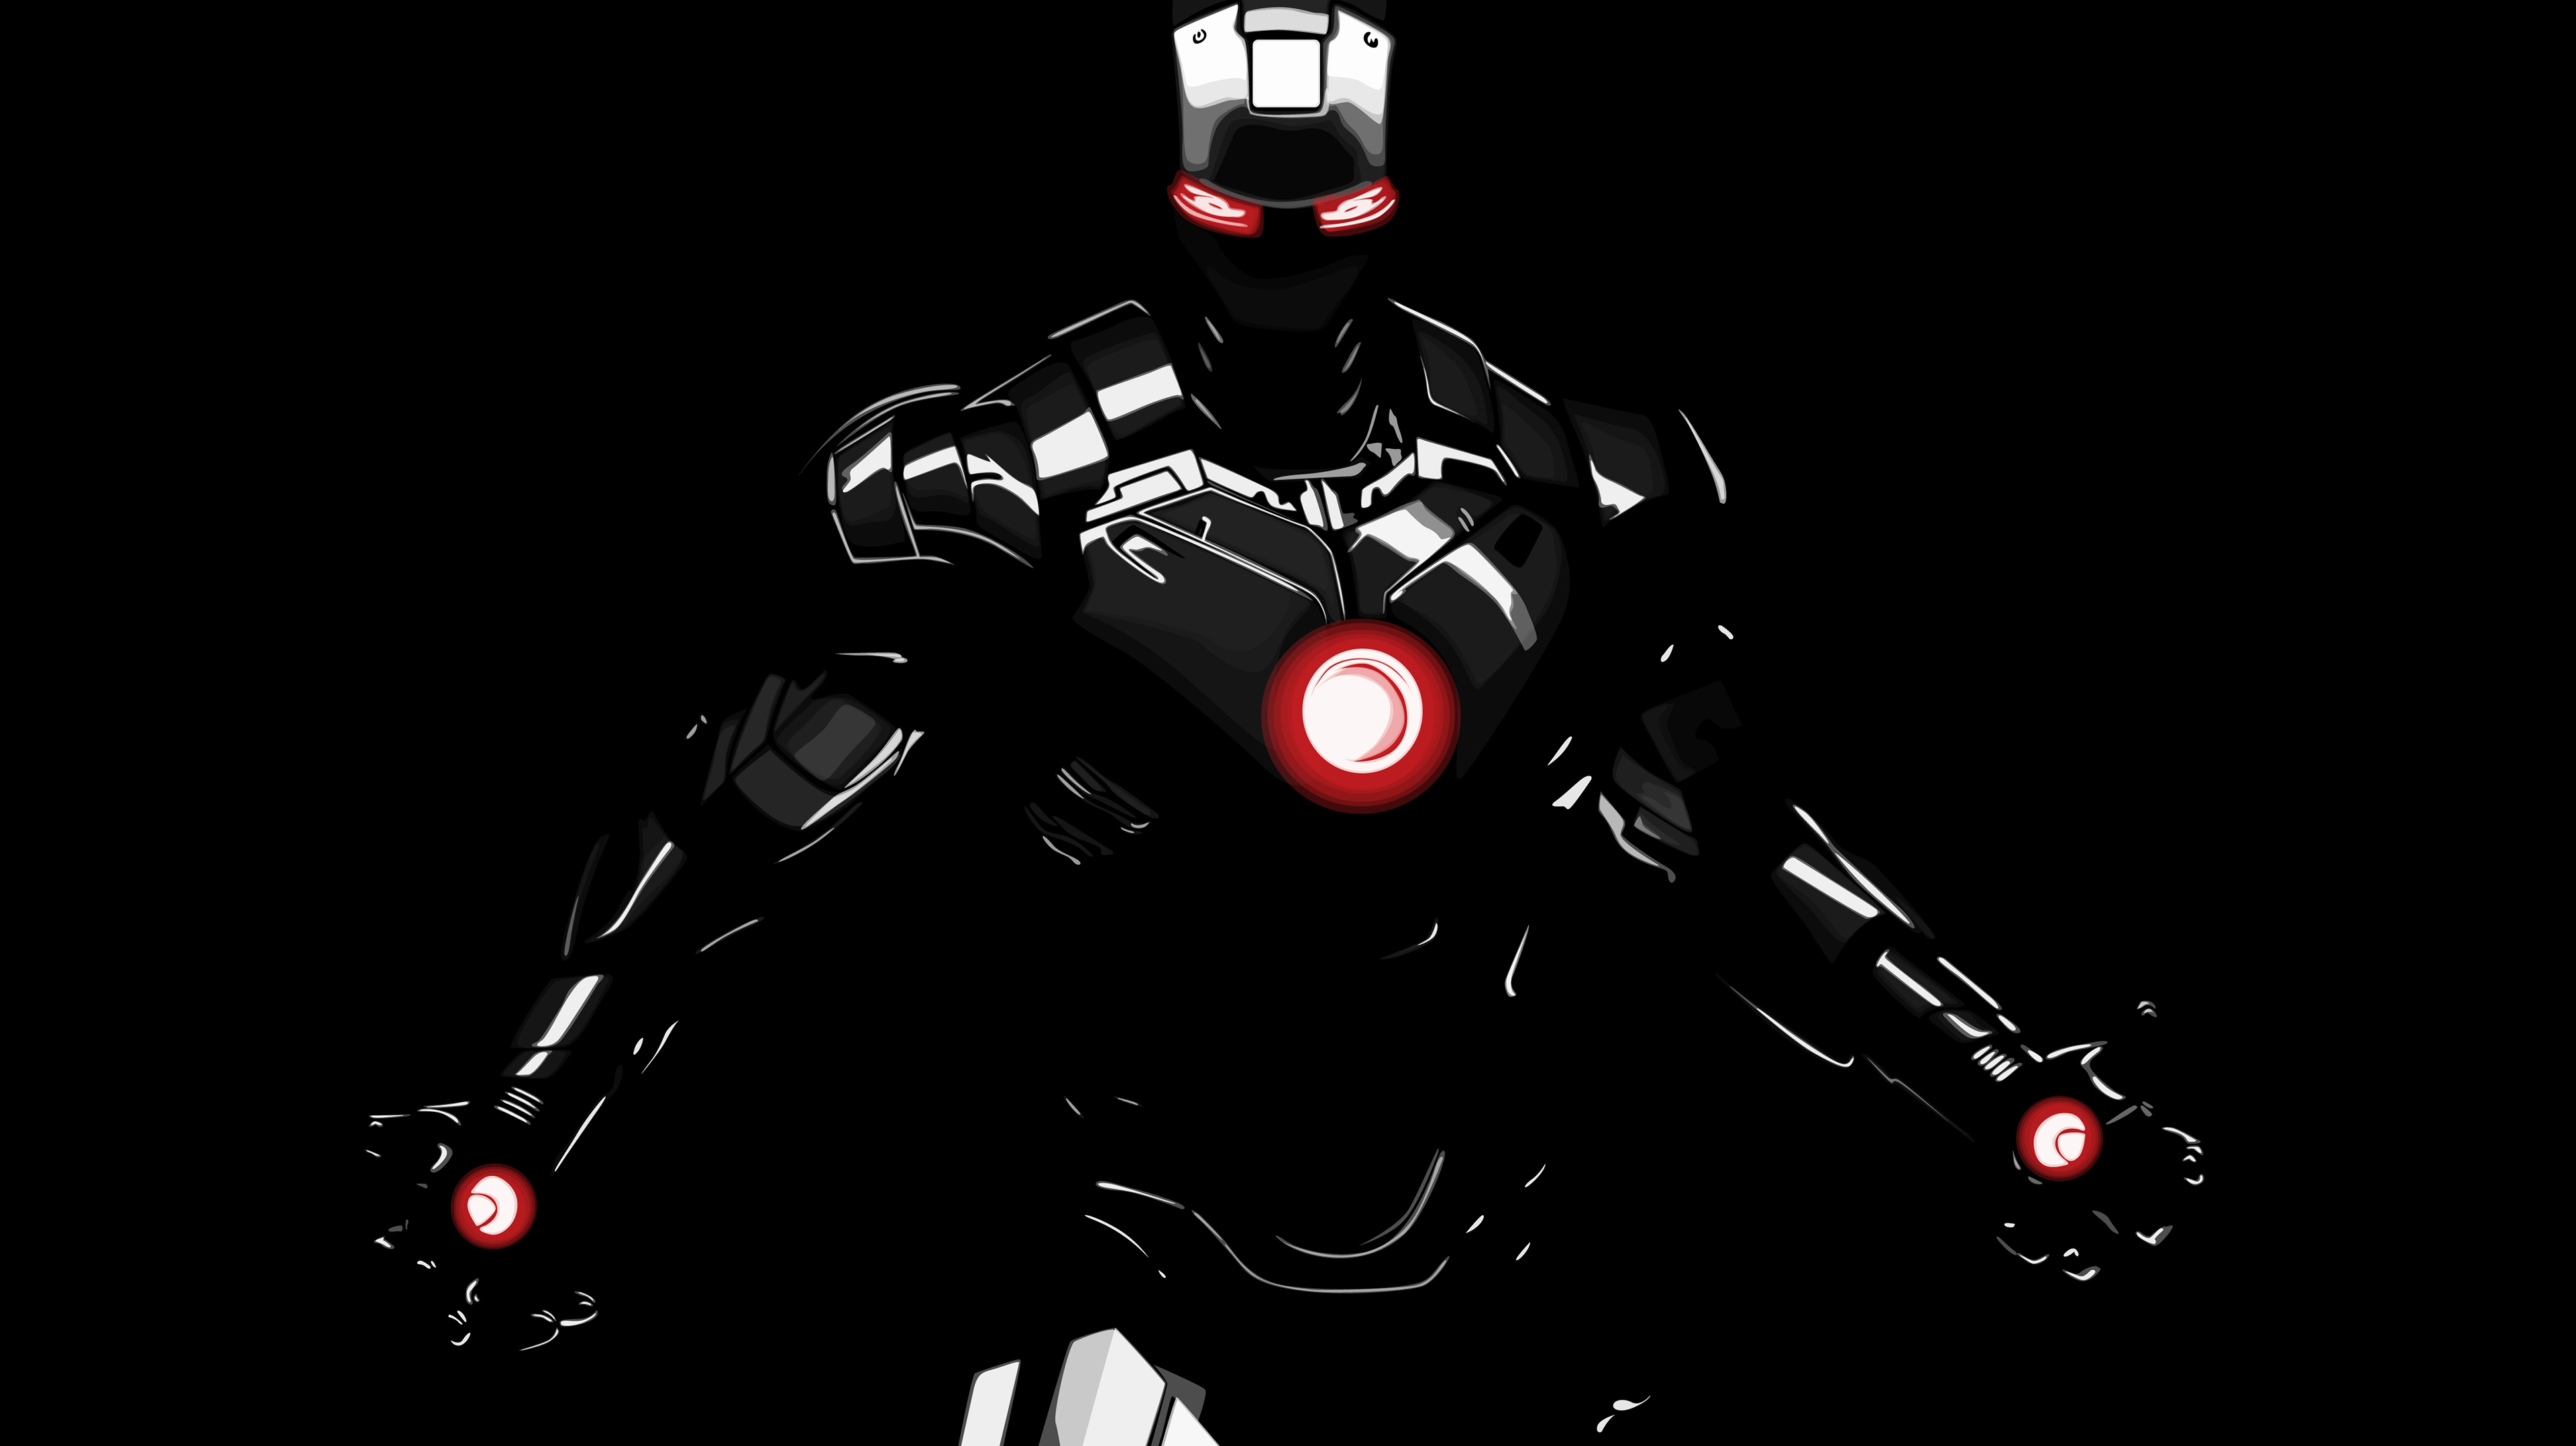 Dark Iron Man Hd Superheroes 4k Wallpapers Images Backgrounds